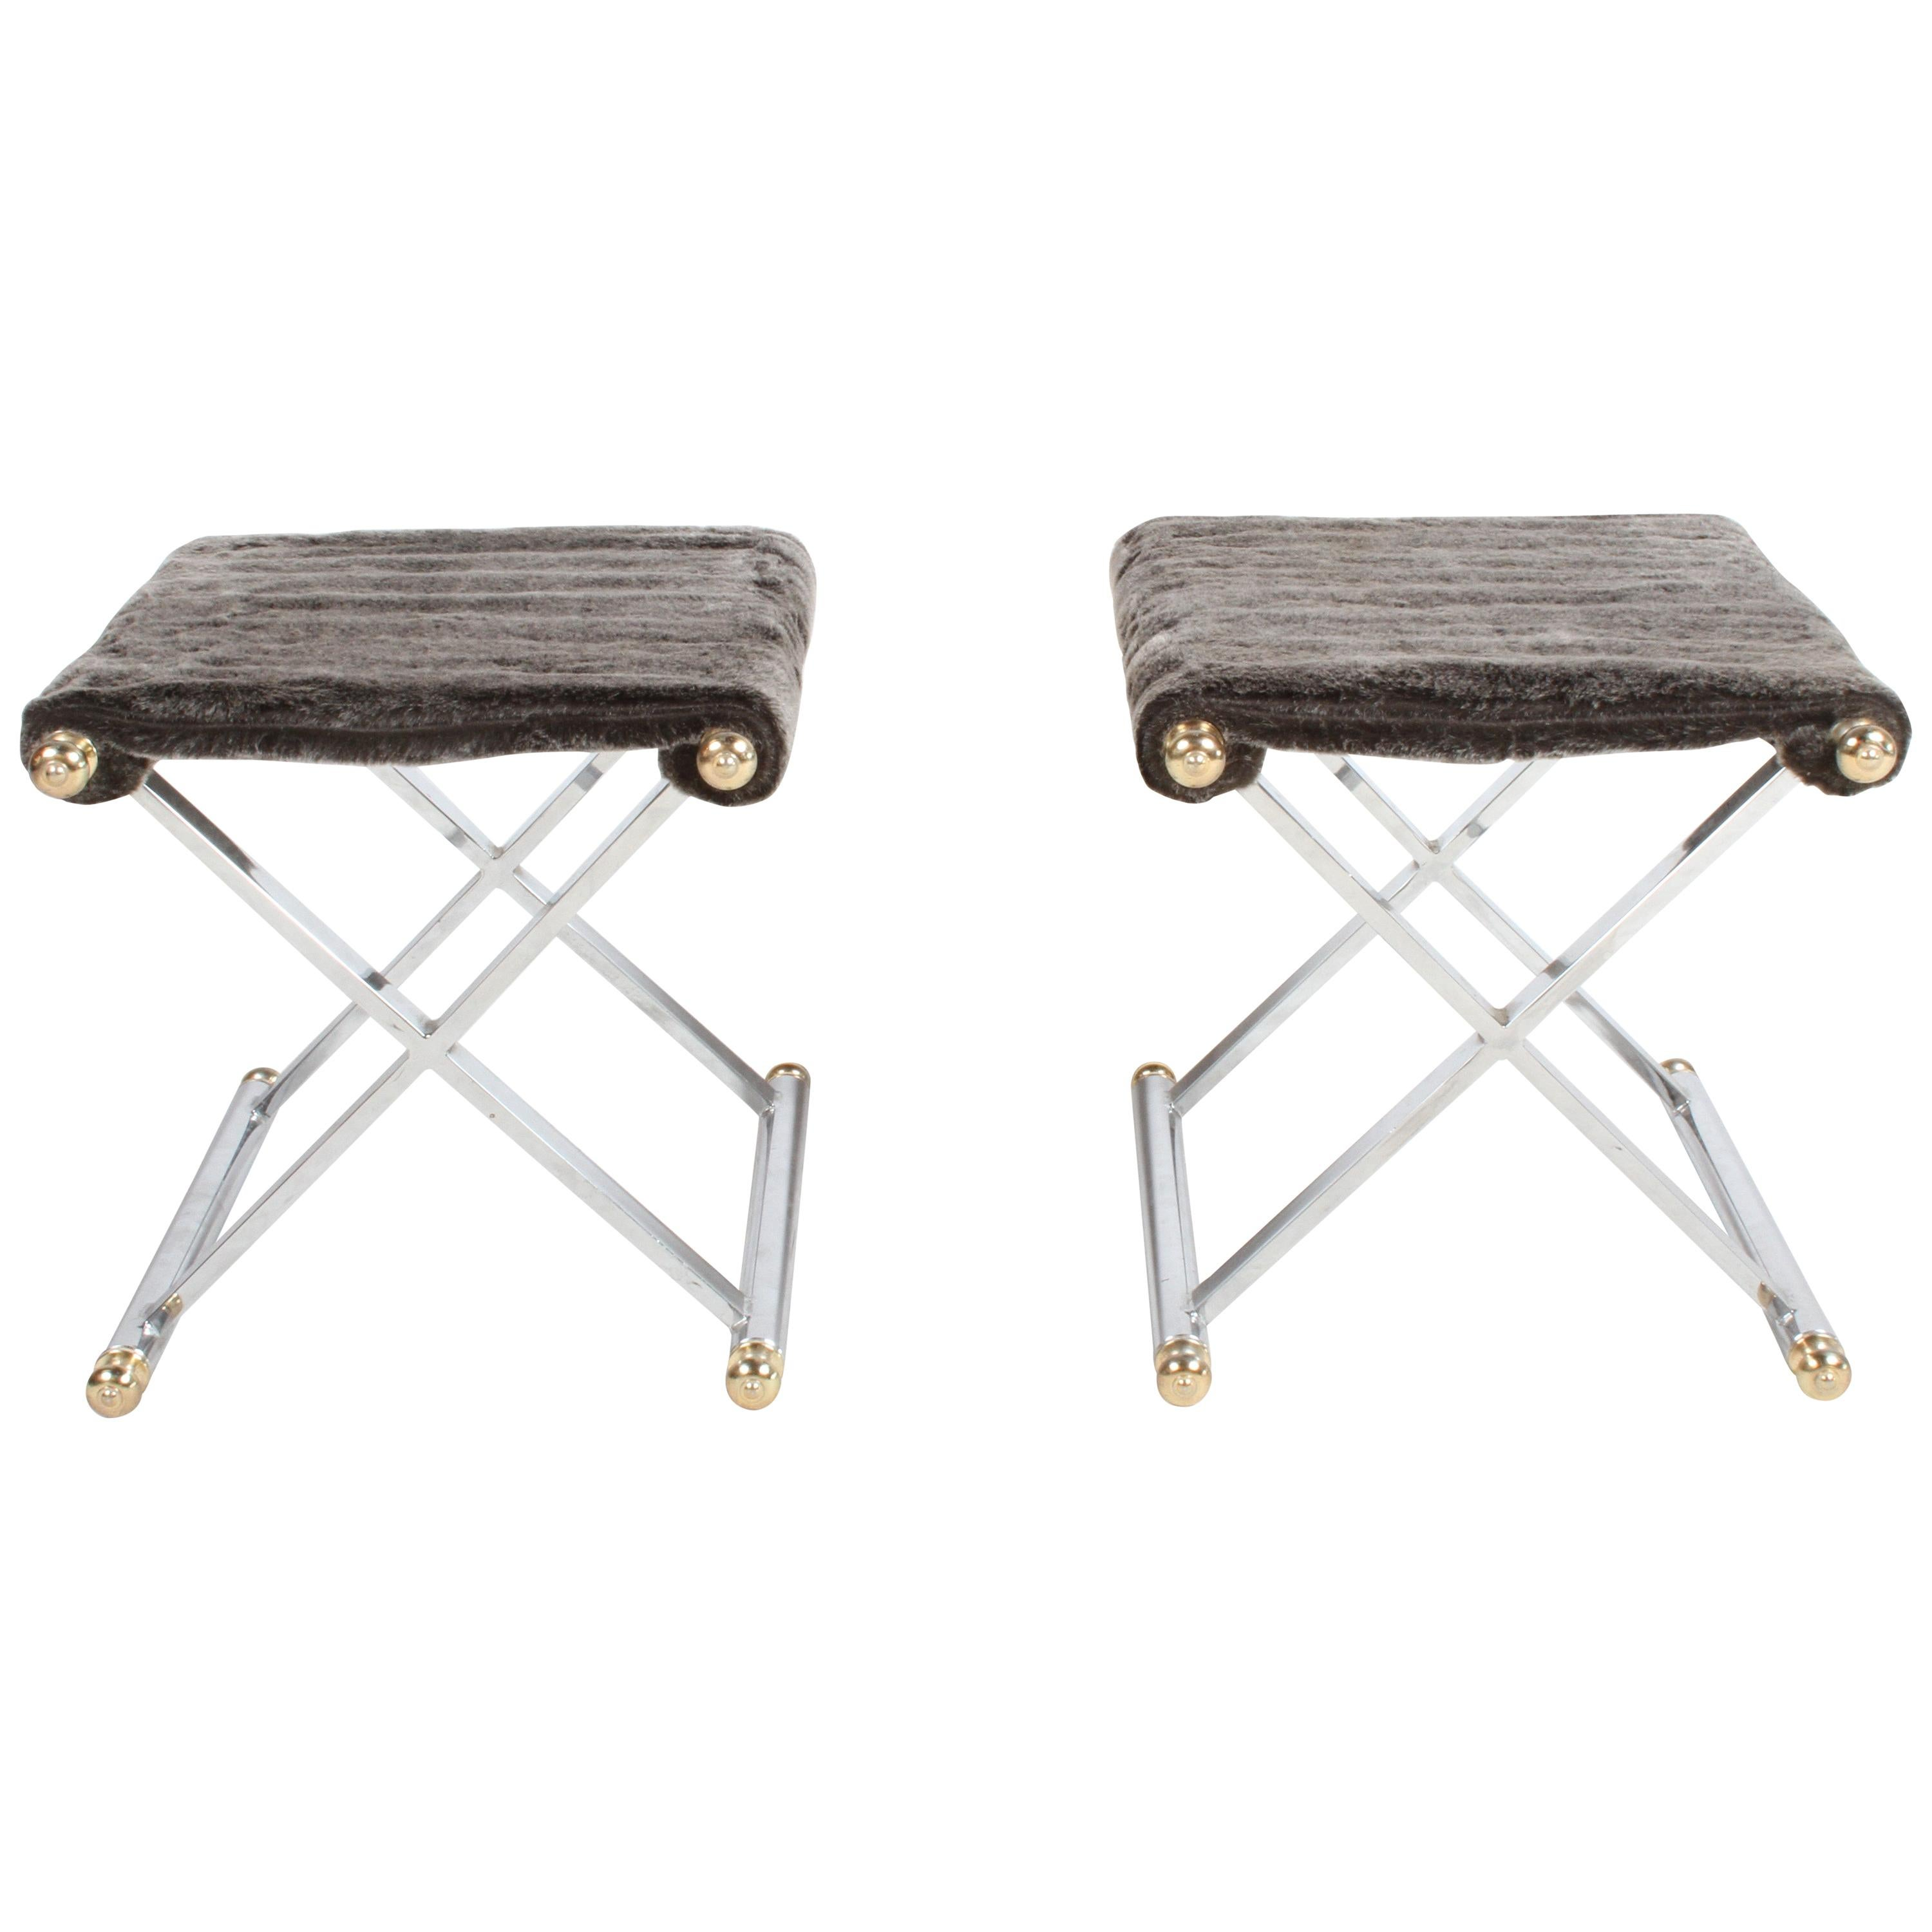 Pair of Hollywood Regency Maison Jansen Style X-Frame Chrome and Brass Stools